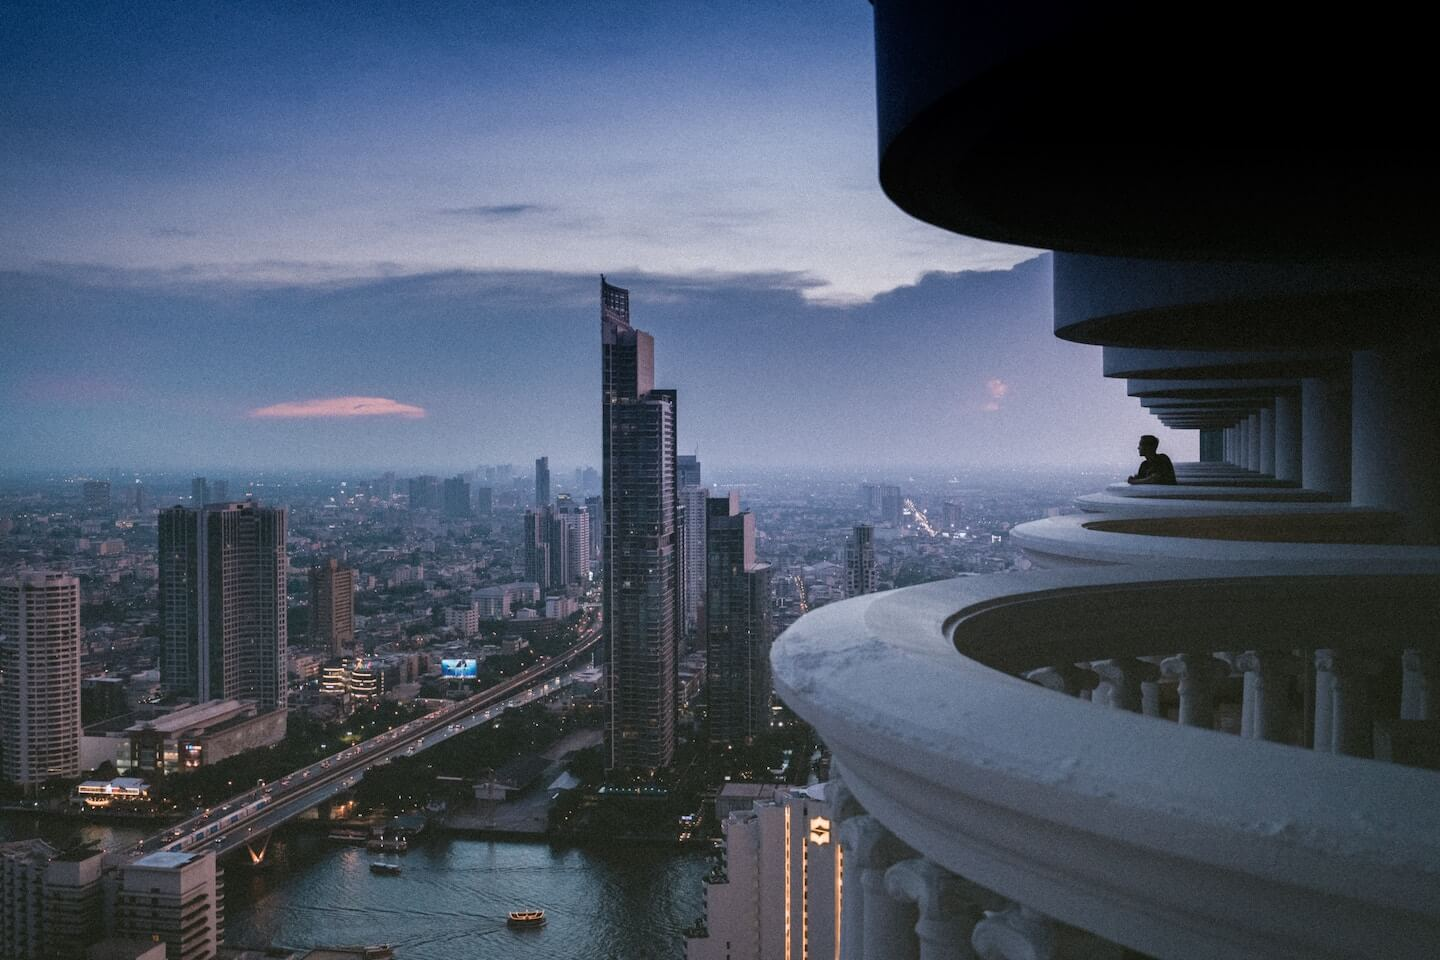 Bangkok Top 5's Dollar Flight Club